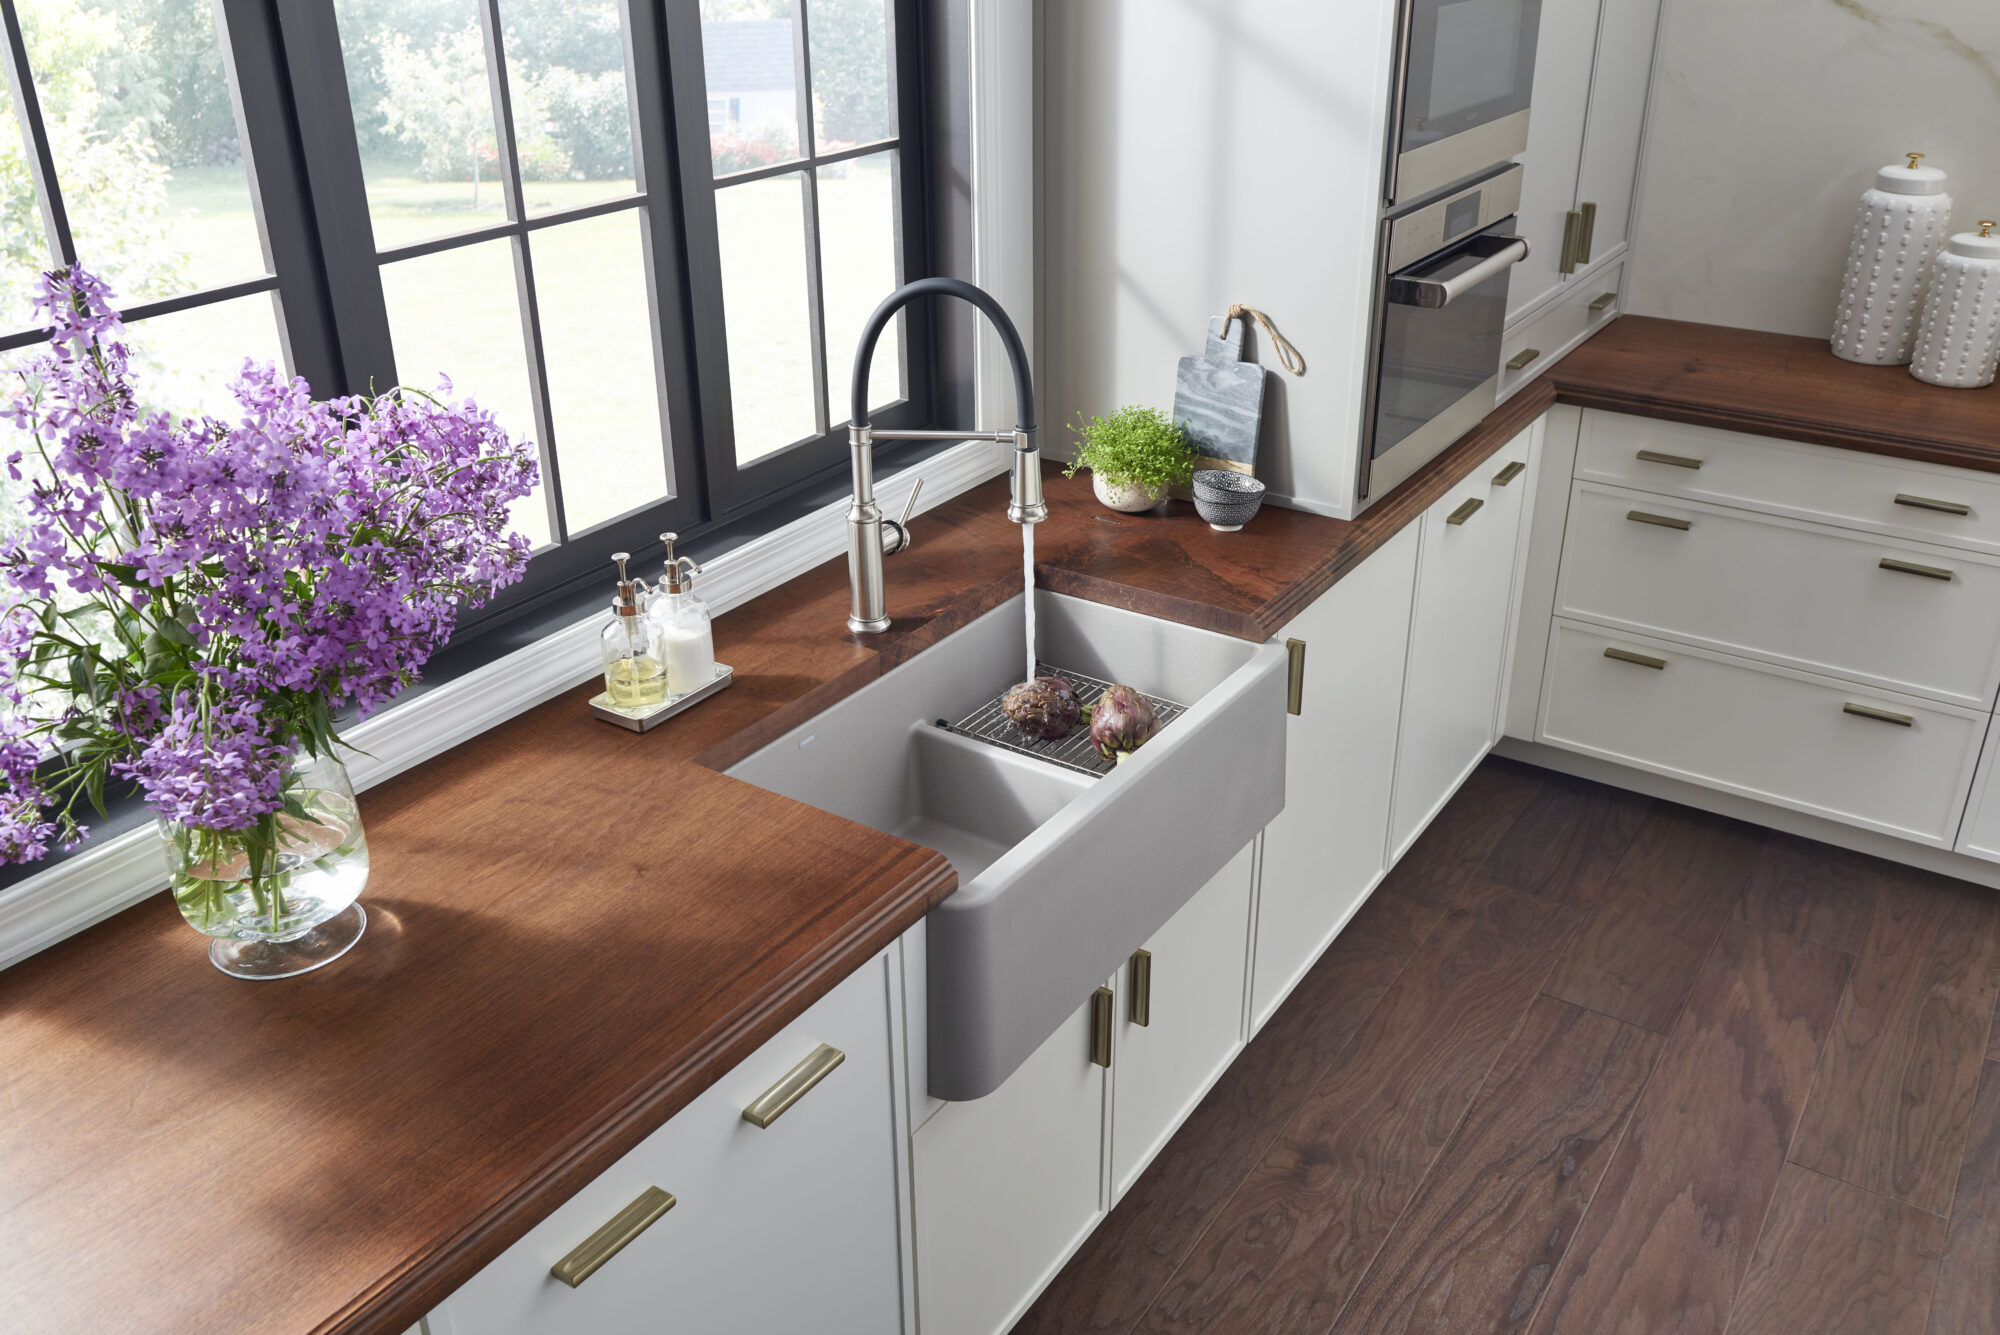 blanco grey sink with running water